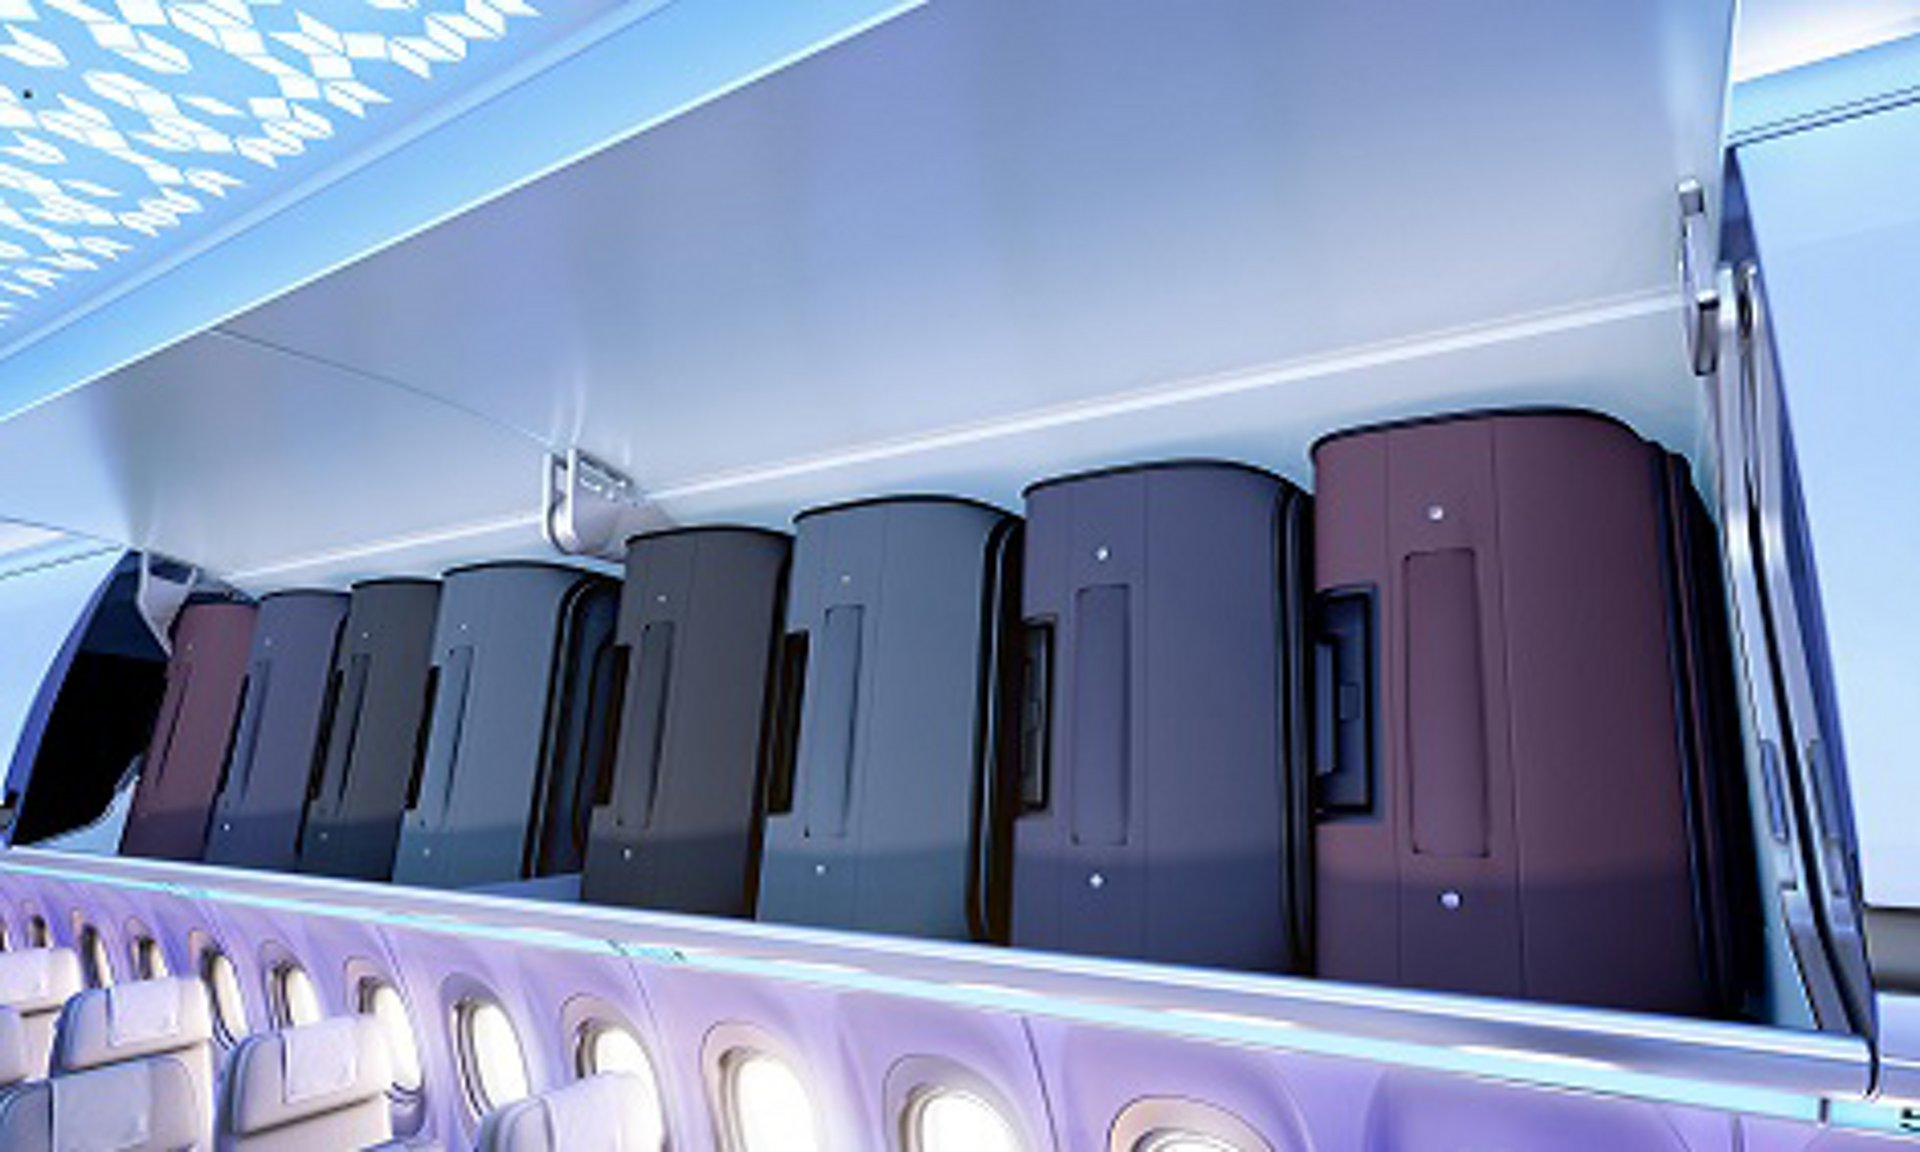 Equip your A320 fleet with Airspace XL bins the biggest bin in its class allowing up to 60% more roller bags.